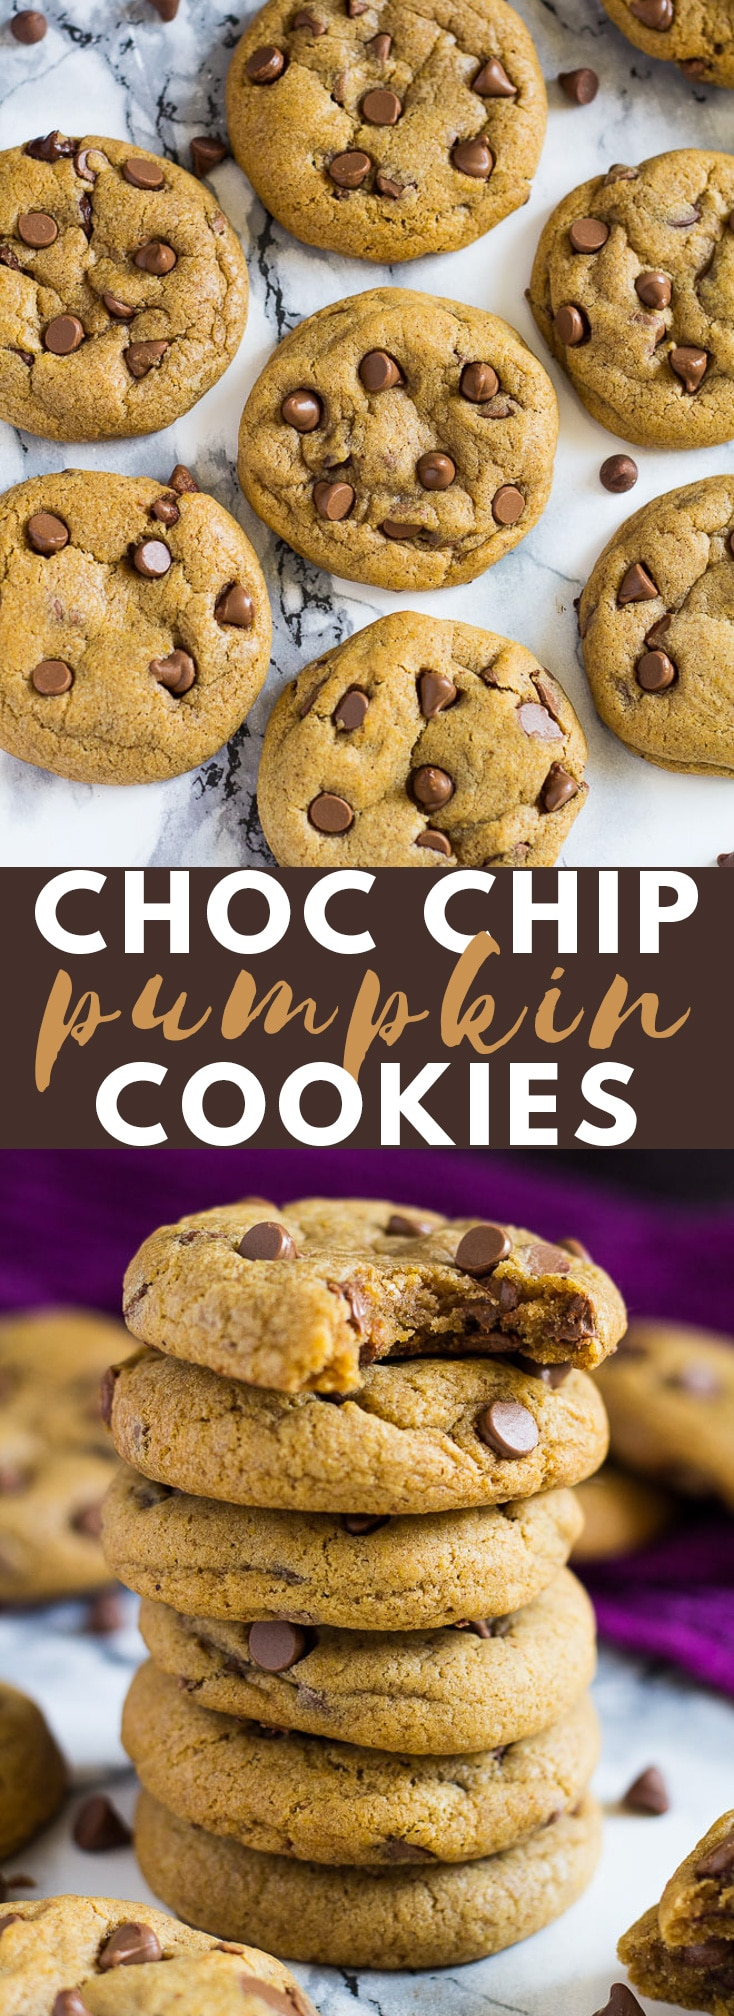 Chocolate Chip Pumpkin Cookies - These spiced pumpkin cookies are deliciously soft and chewy in the inside (without being cakey!), slightly crispy on the outside, and stuffed full of chocolate chips. No chilling required! #pumpkin #pumpkincookies #pumpkinrecipes #cookies #chocolatechipcookies #cookierecipes #autumn #fall